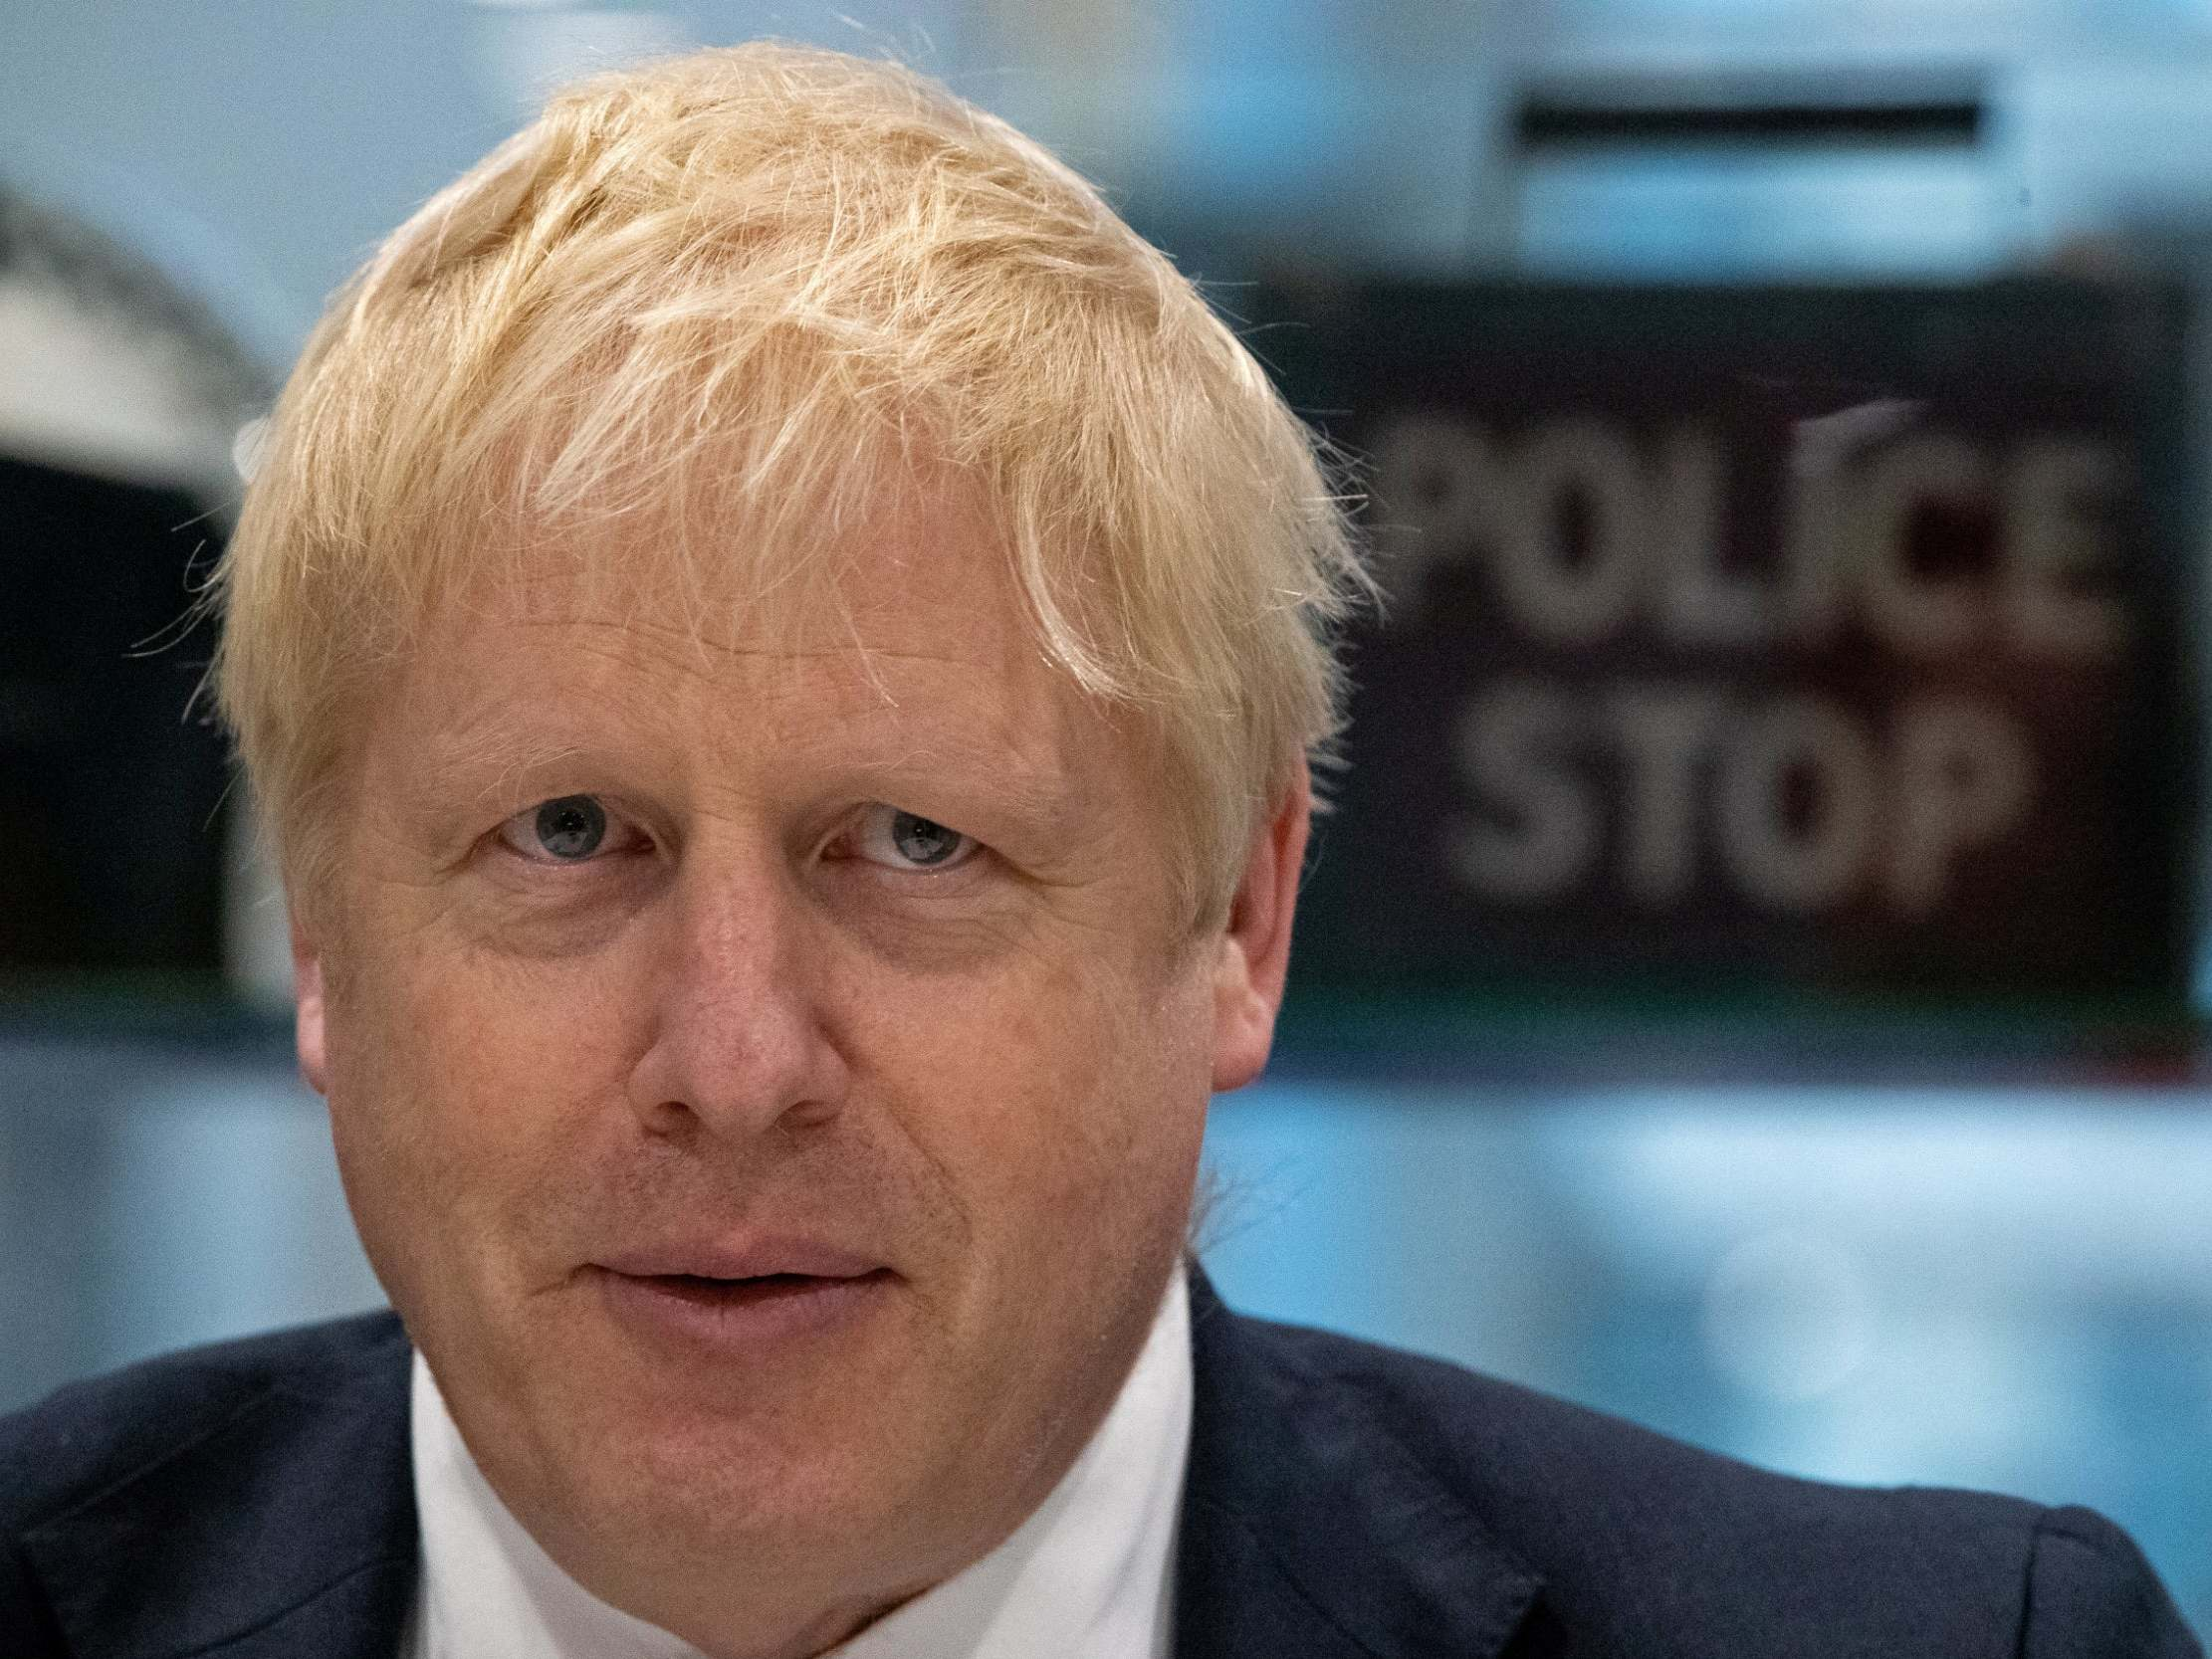 Boris Johnson news – live: Farage to reveal general election threat to PM as Labour 'allotment plot' claim emerges